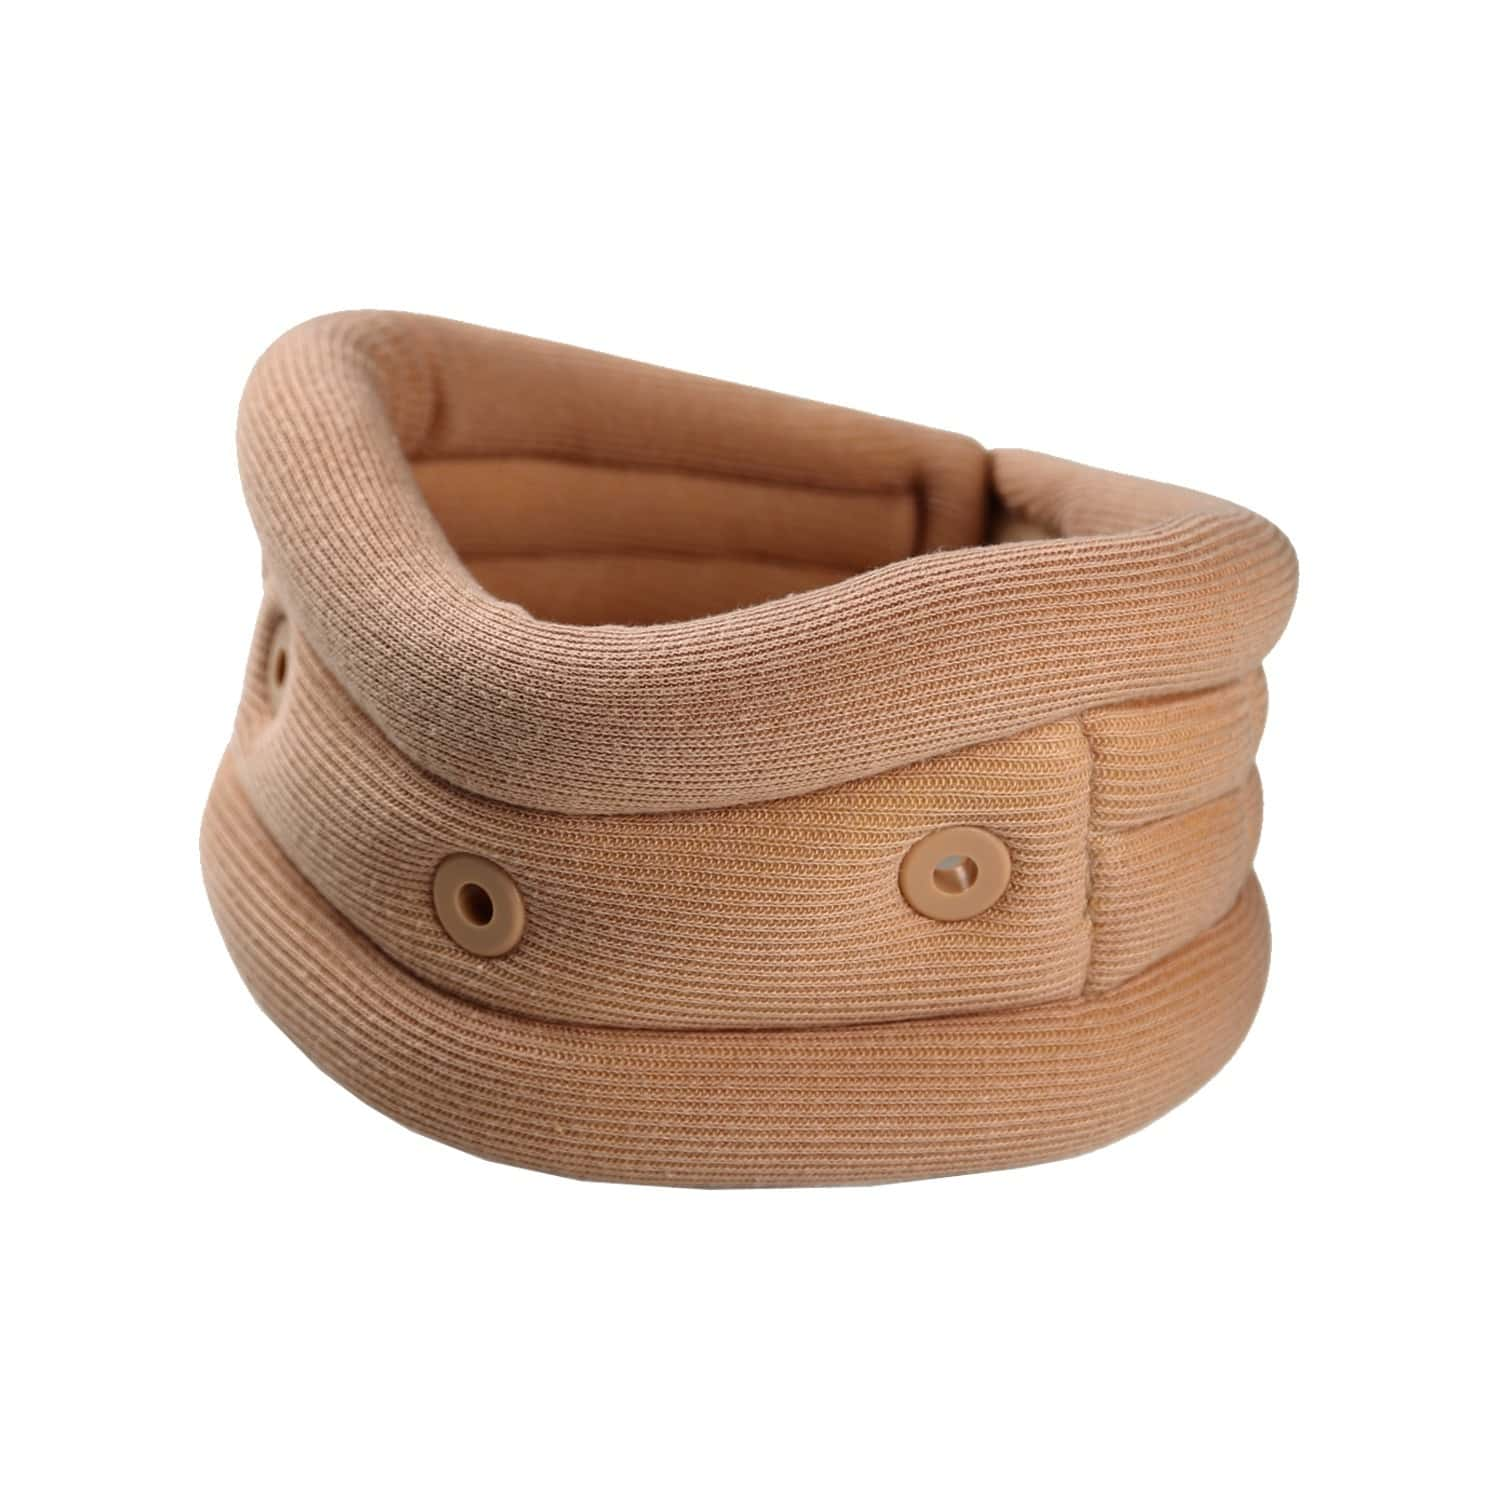 Tynor Cervical Collar Soft With Support ( Immobilization,comfort,ventilation) - Small